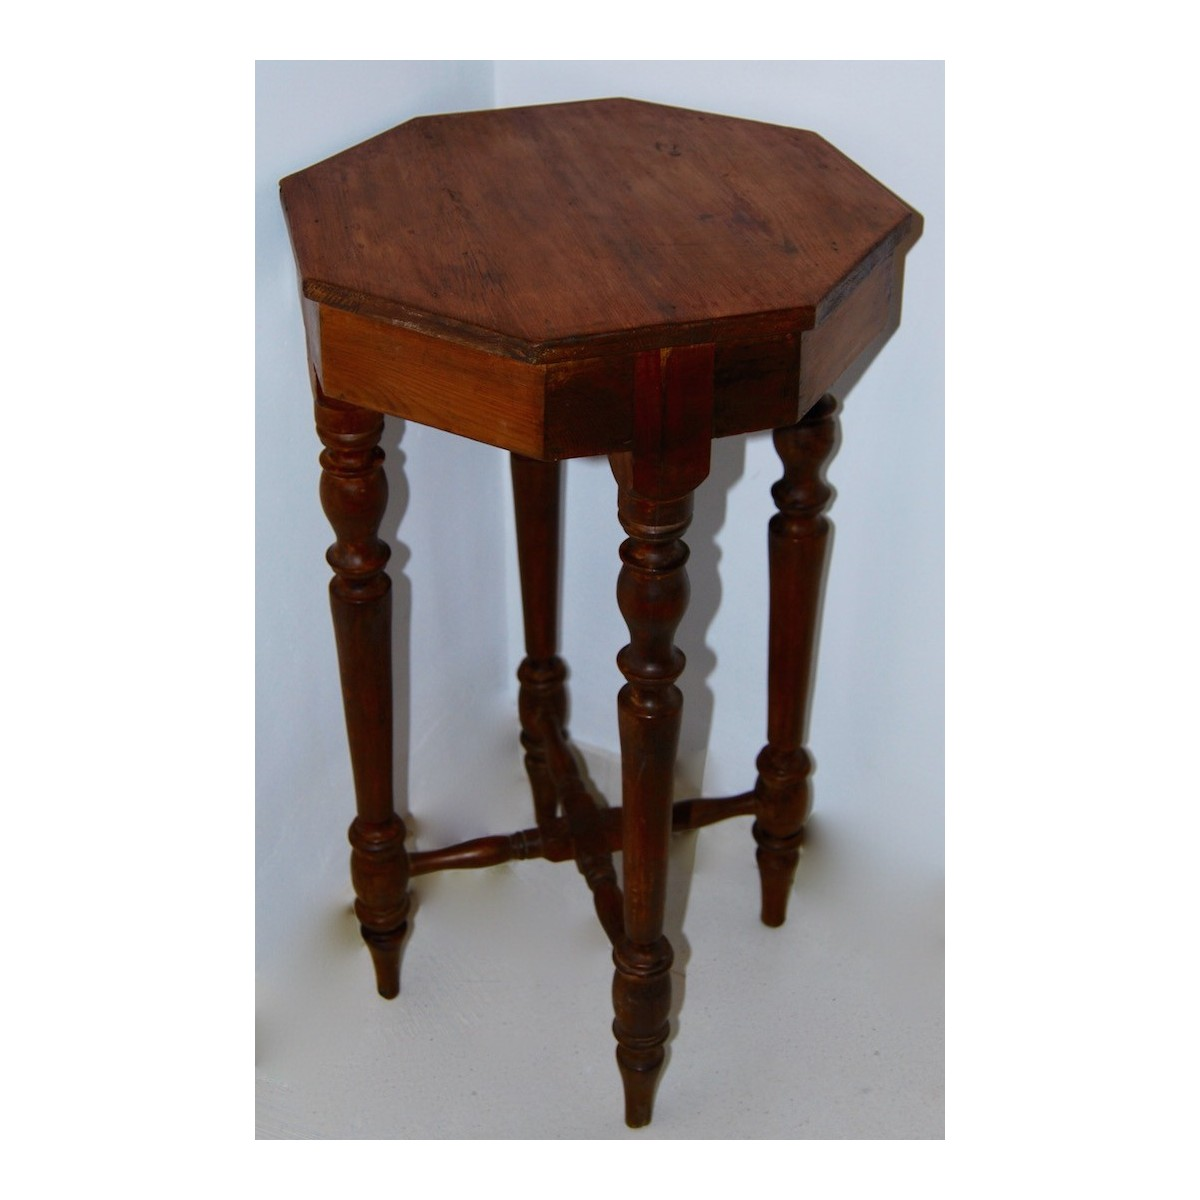 Furniture auxiliary pine wood 1900-1920